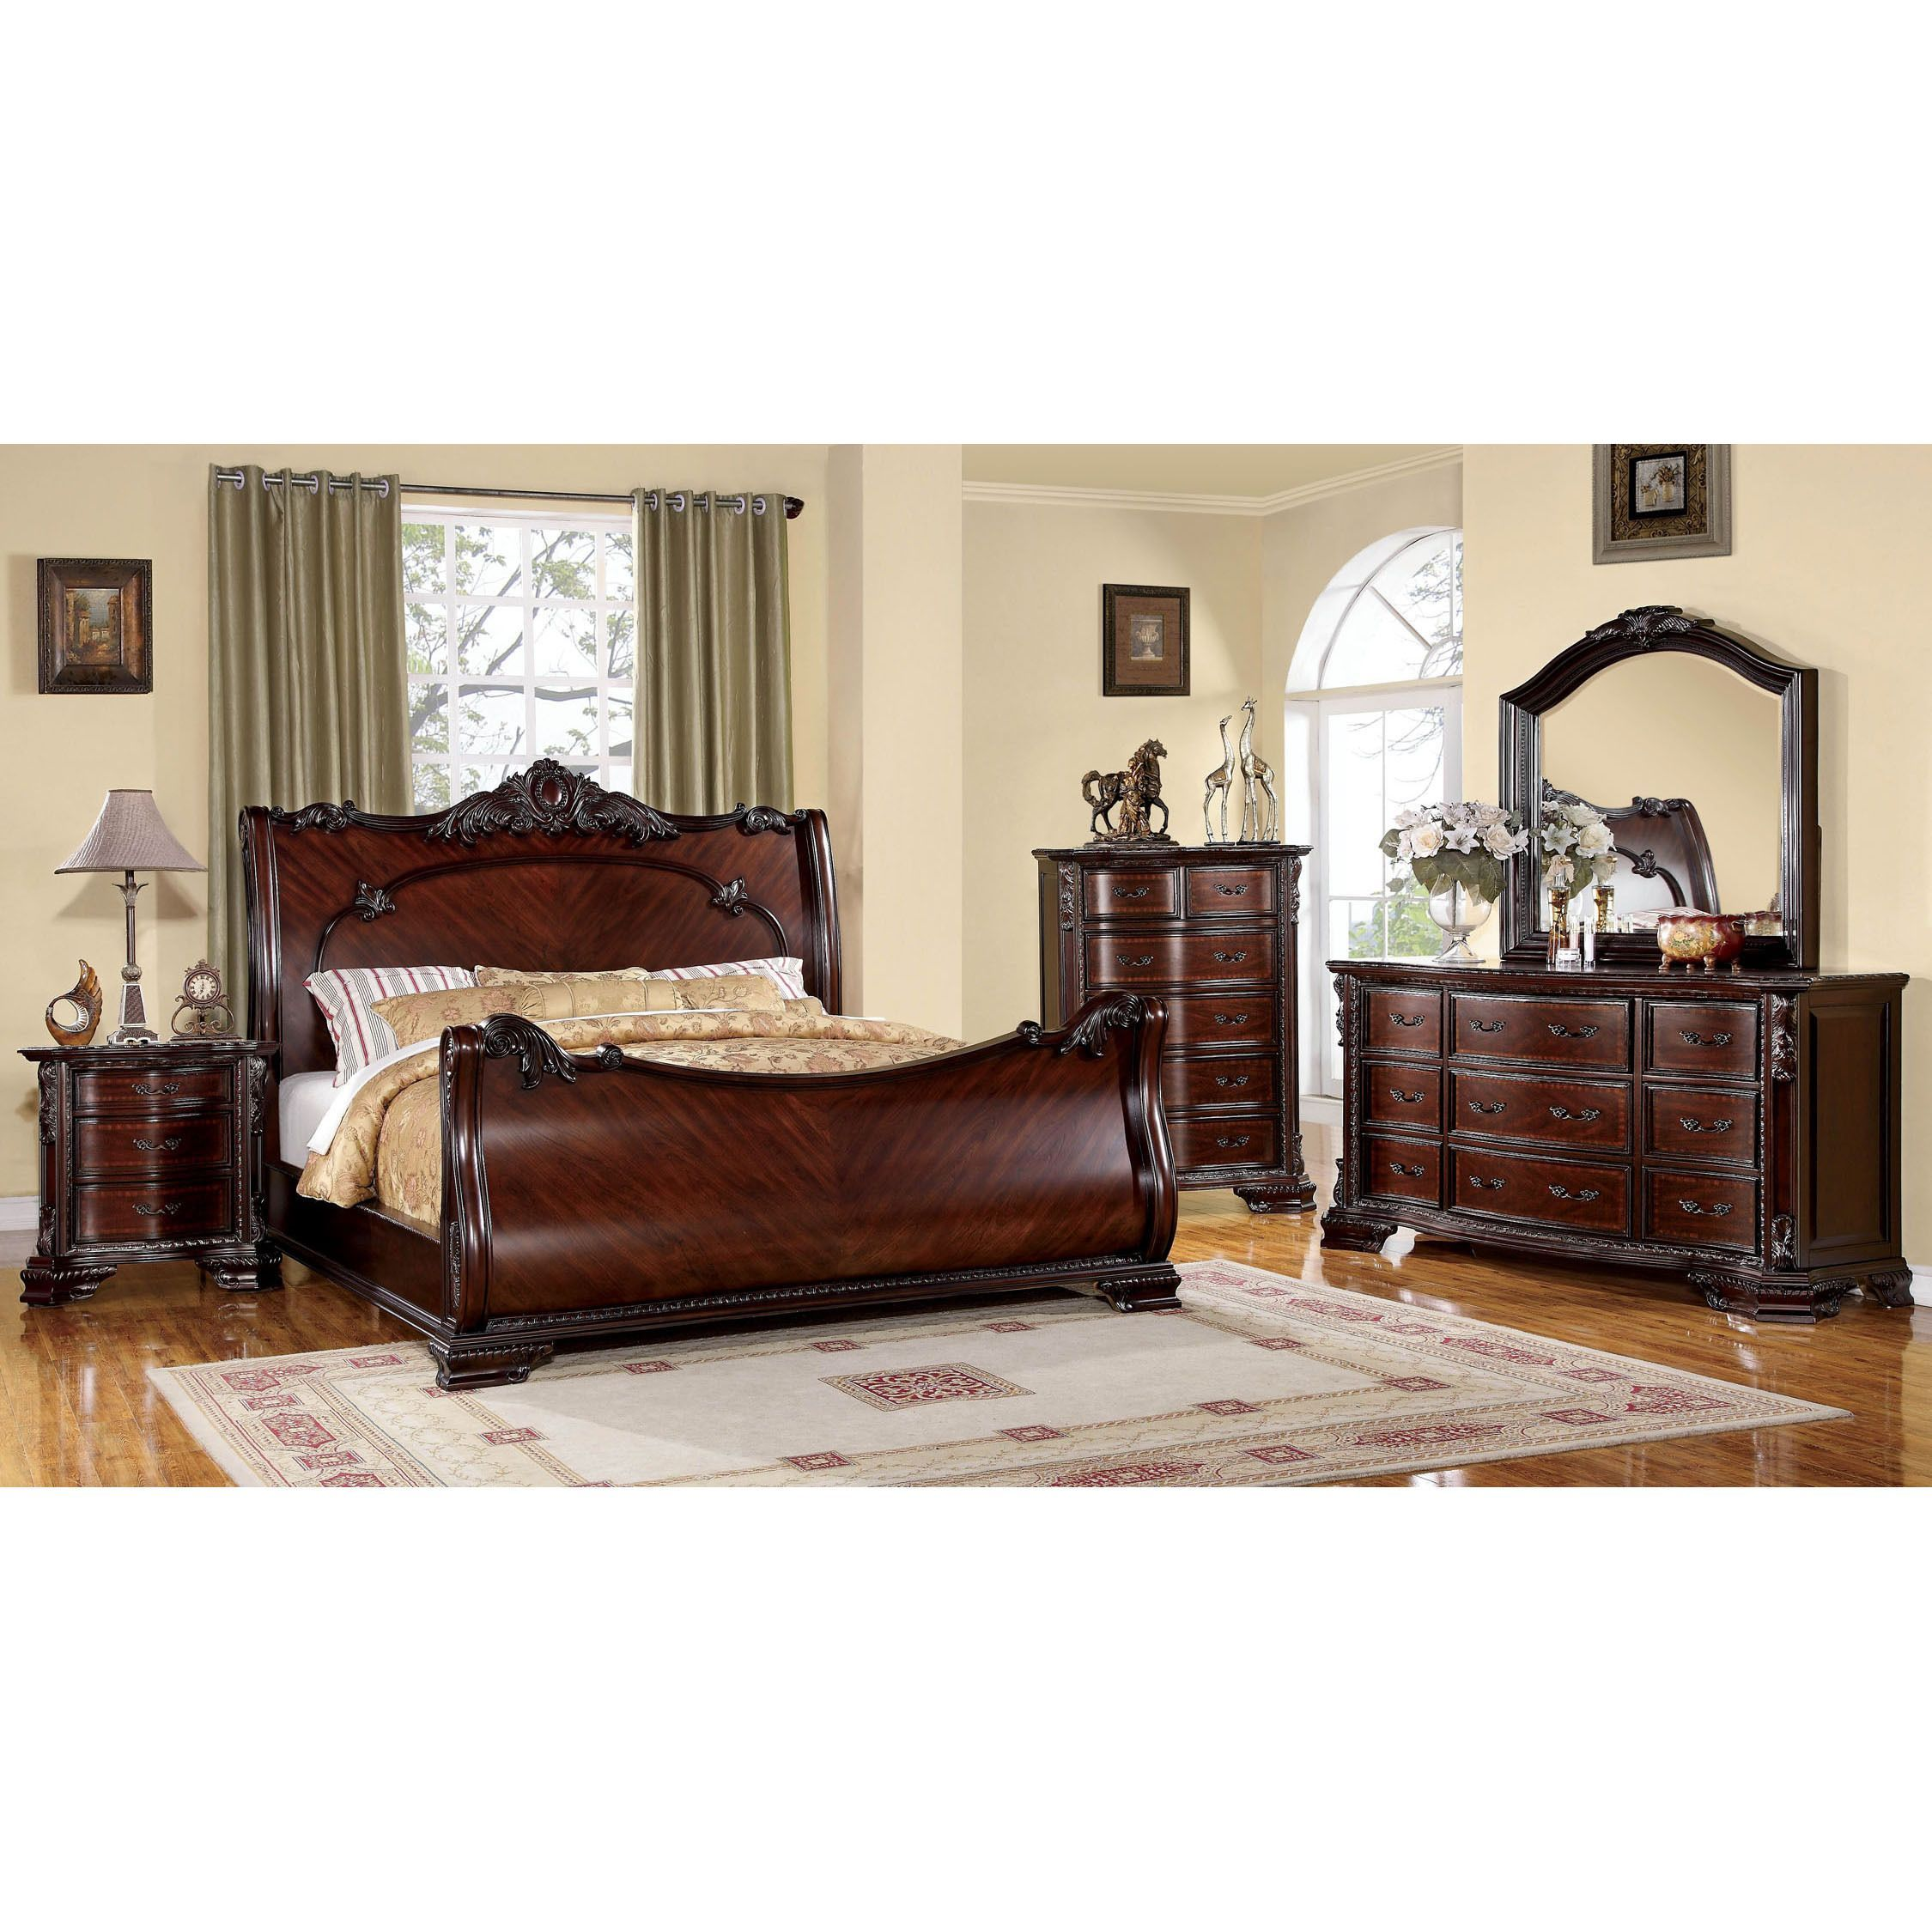 Furniture of America Luxury Brown Cherry 4-Piece Baroque Style ...